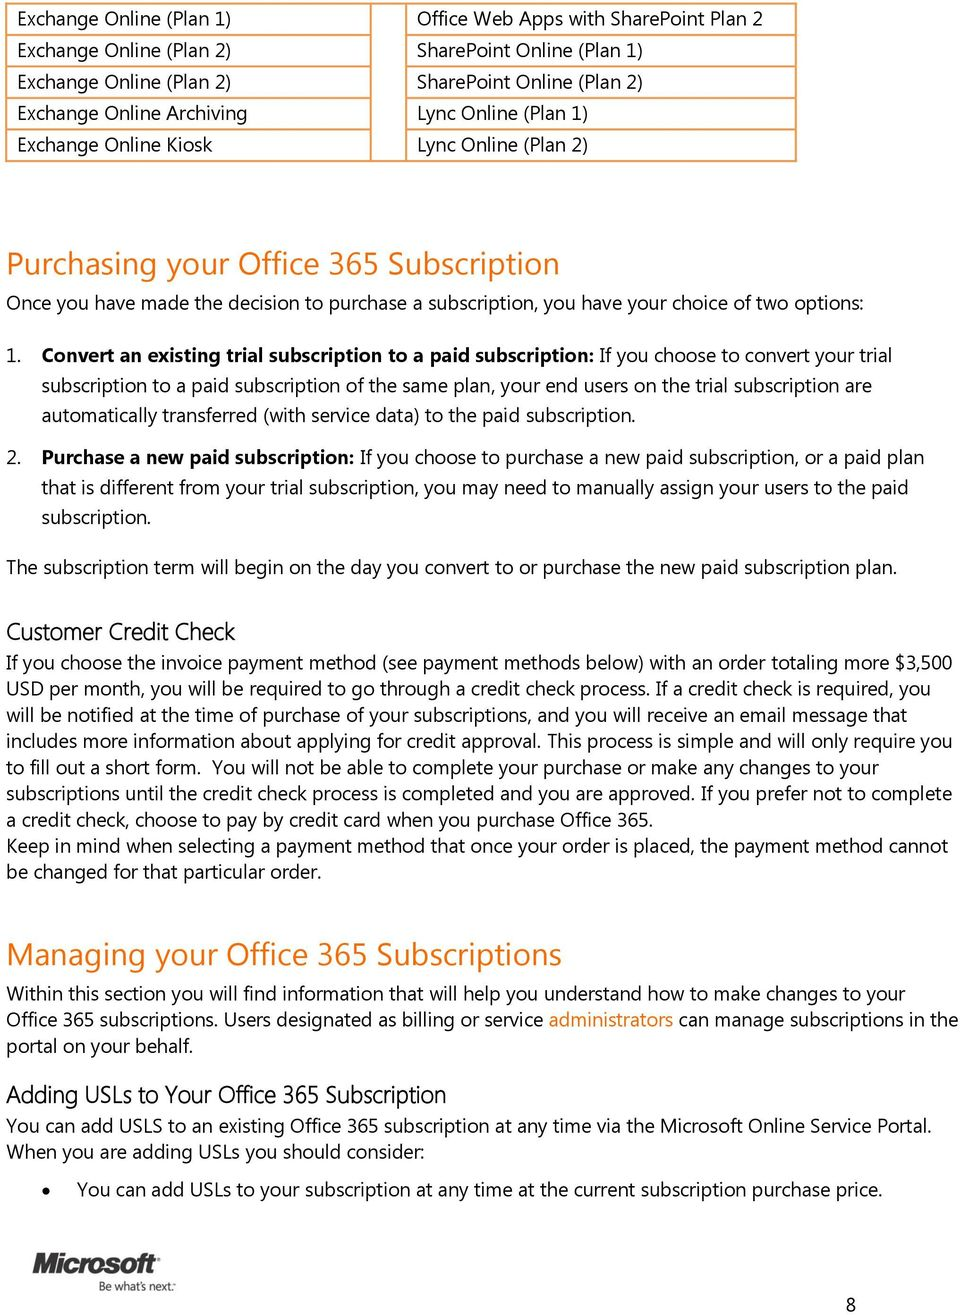 Microsoft Office 365 for midsize businesses and enterprises